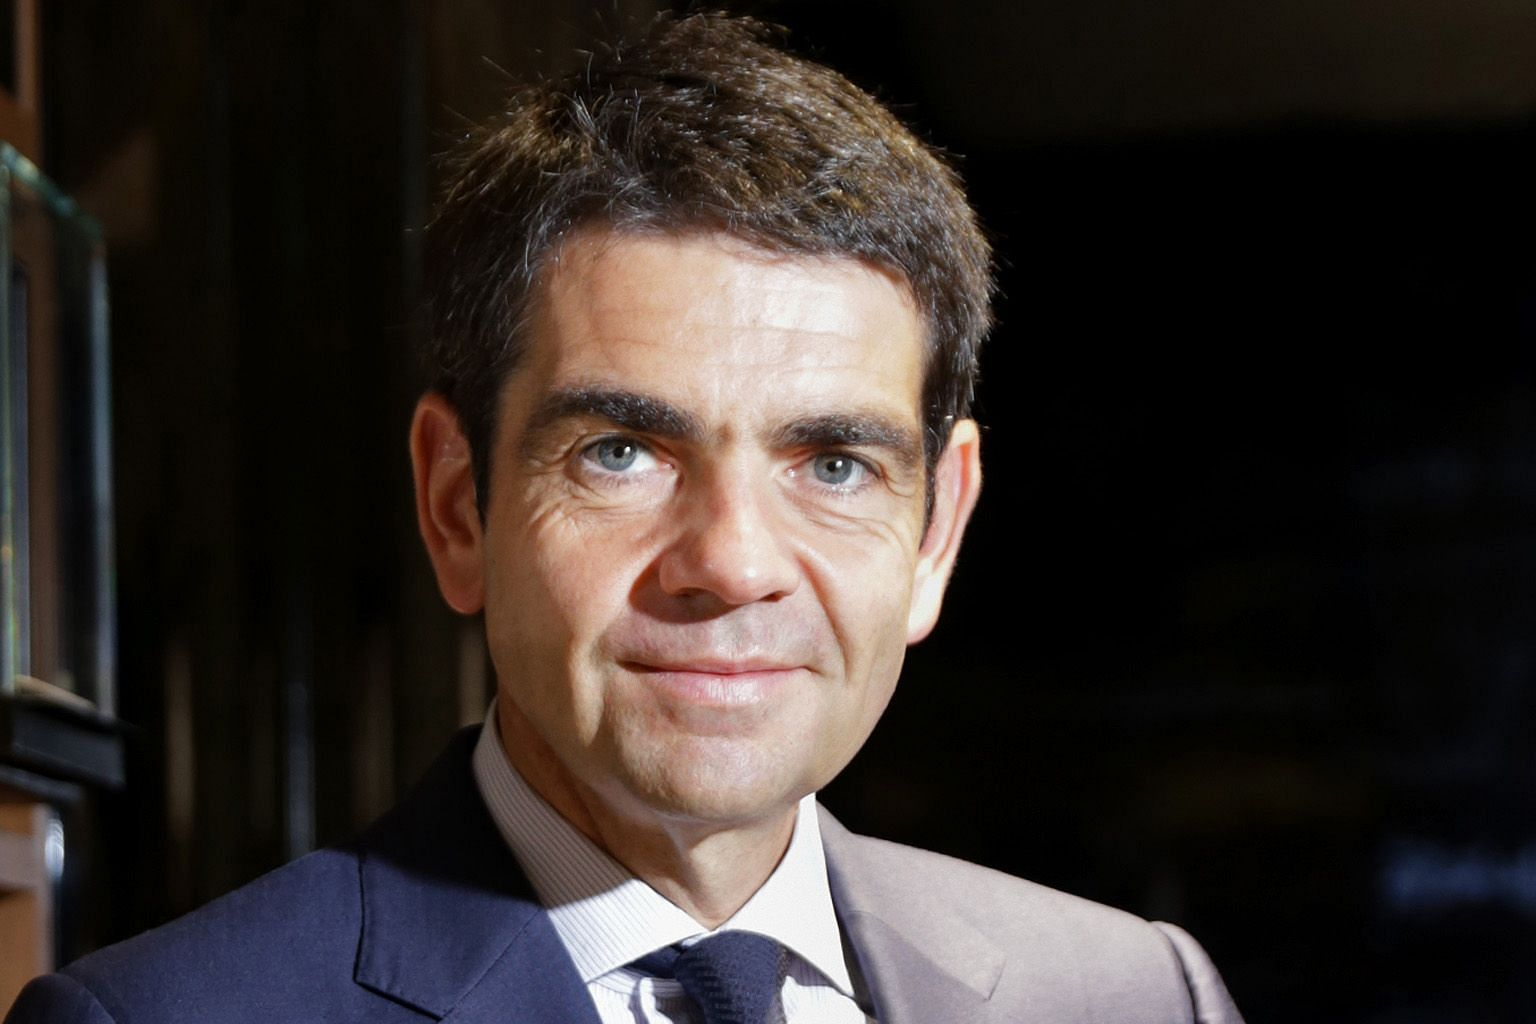 Mr Jerome Lambert will have to help Richemont put its watch brands back on track.